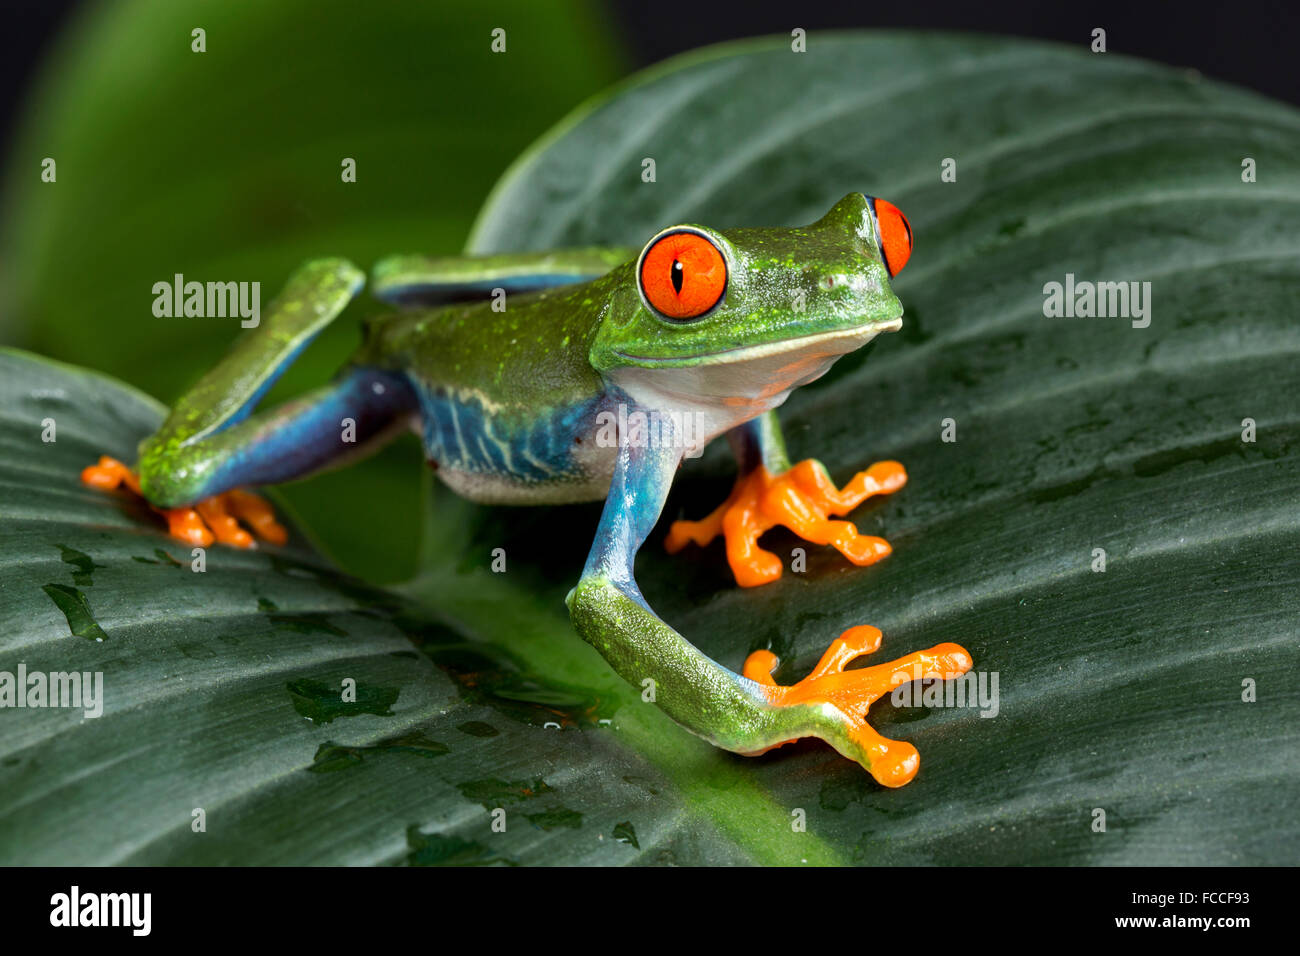 Red Eyed Tree Frog - Stock Image